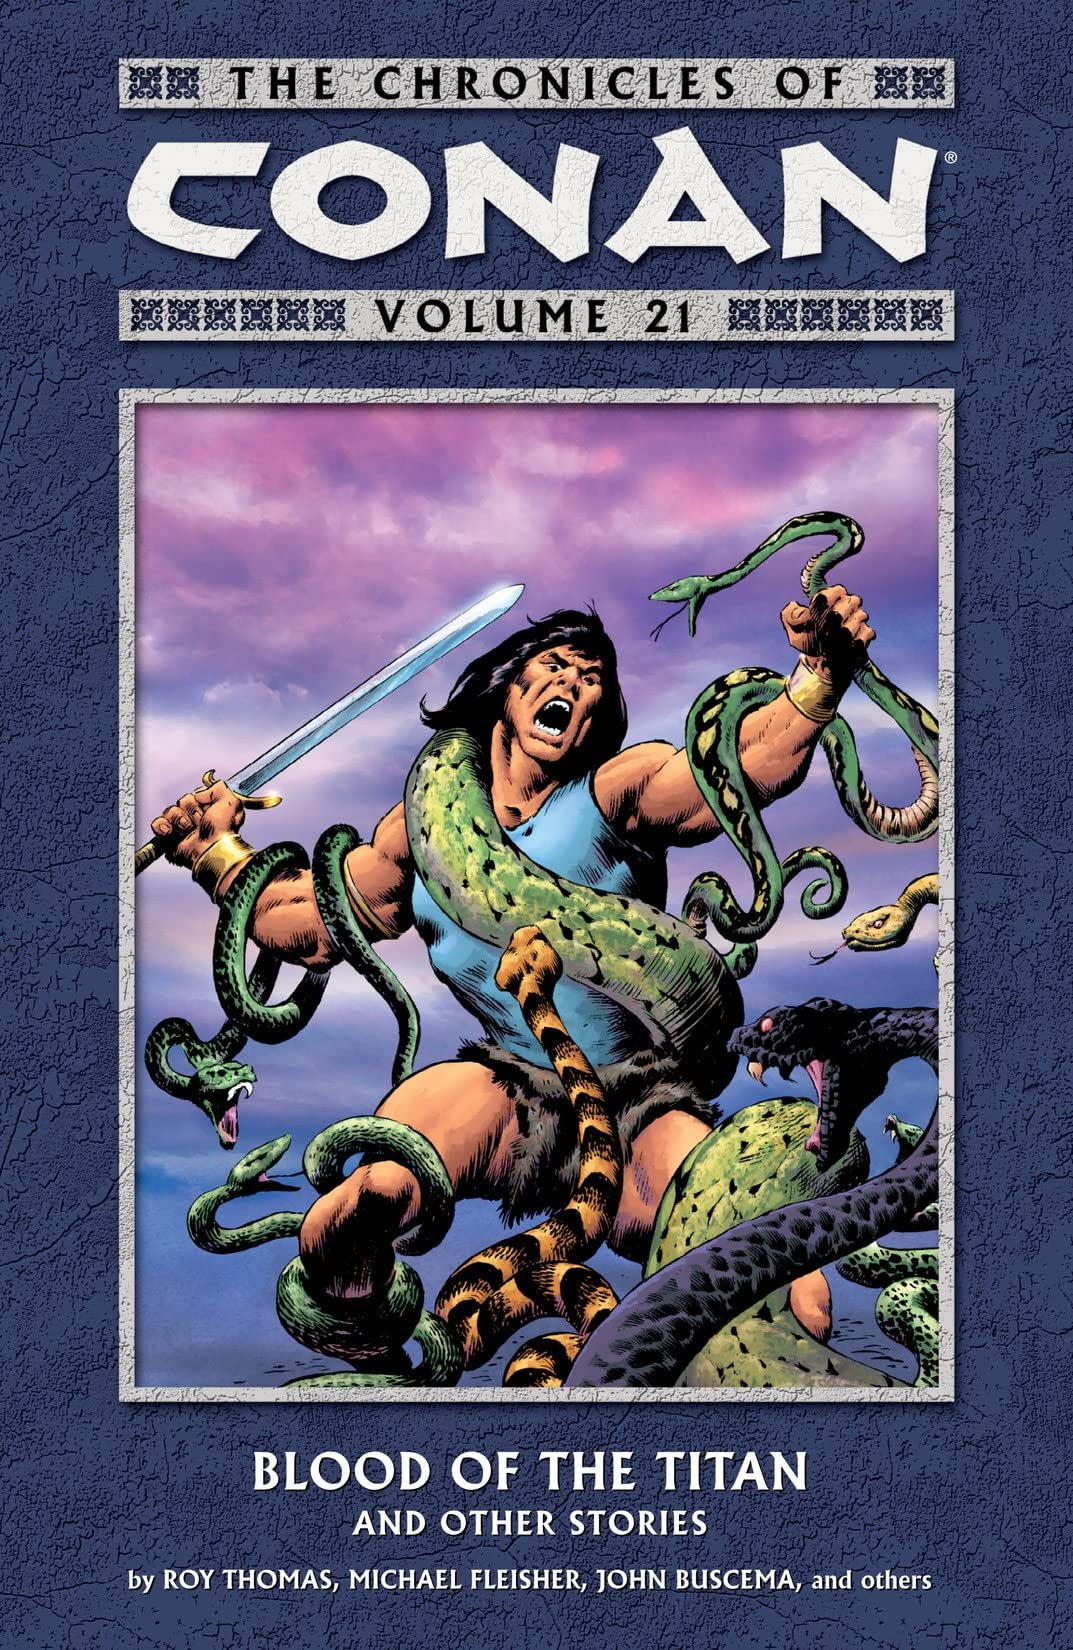 Chronicles of Conan Vol. 21: Blood of the Titan and Other Stories